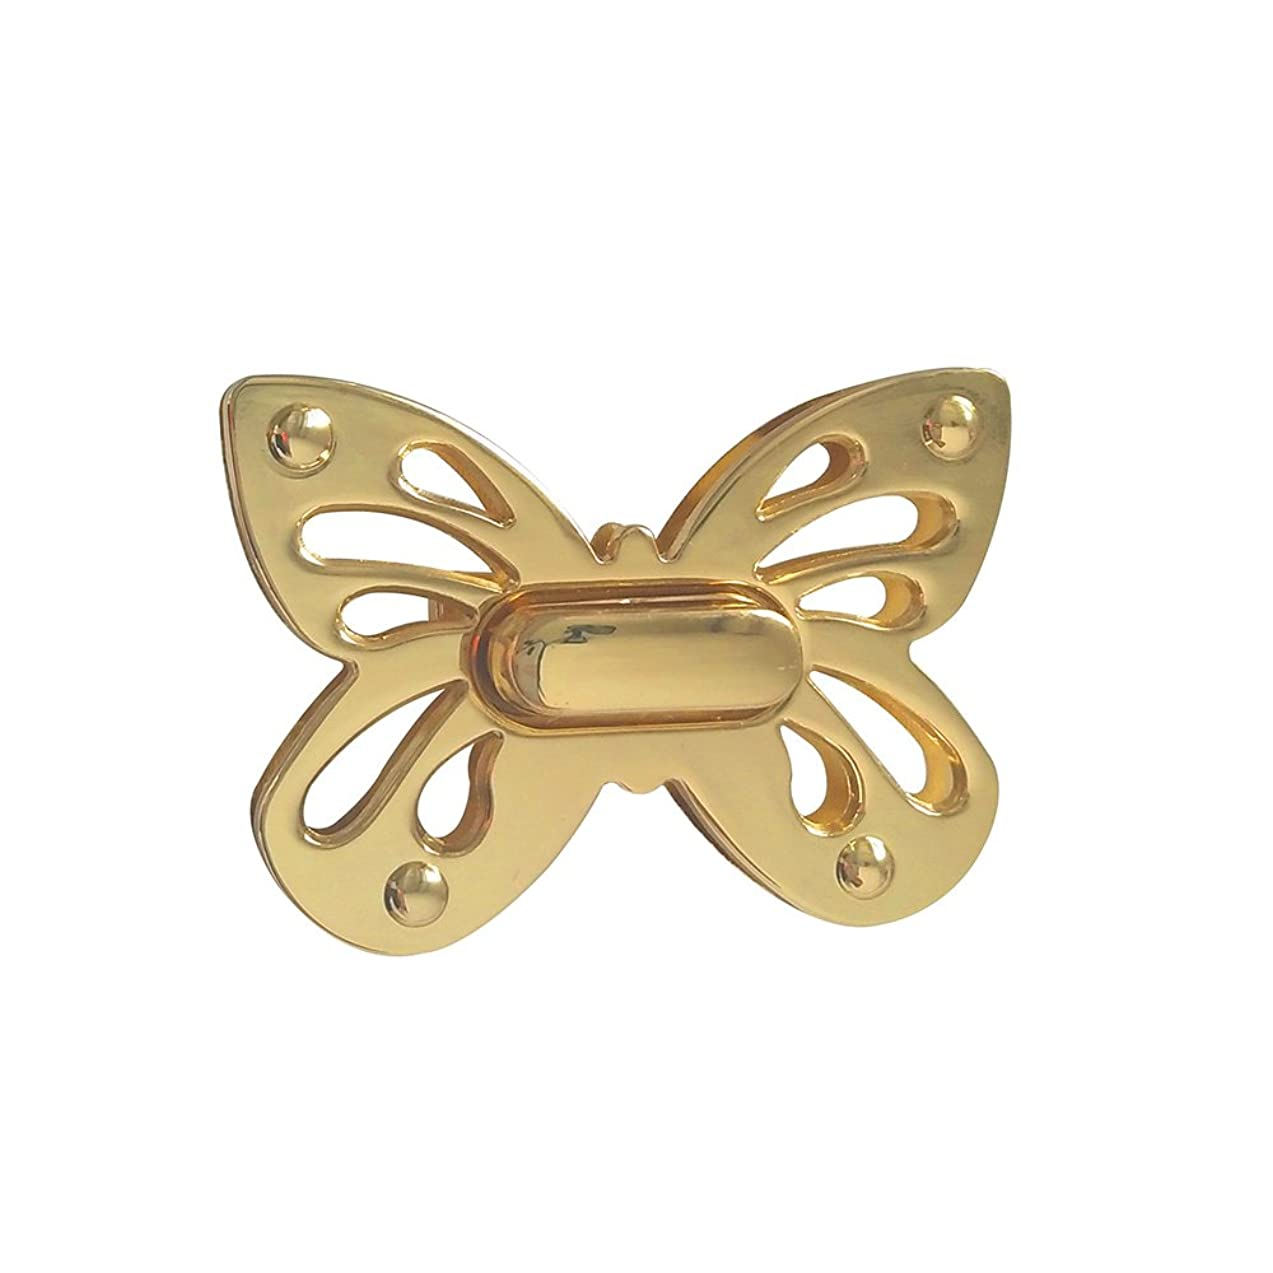 YEJI Sets of 1 Butterfly Purses Locks Clutches Closures with Butterfly shape,Purse Twist Lock